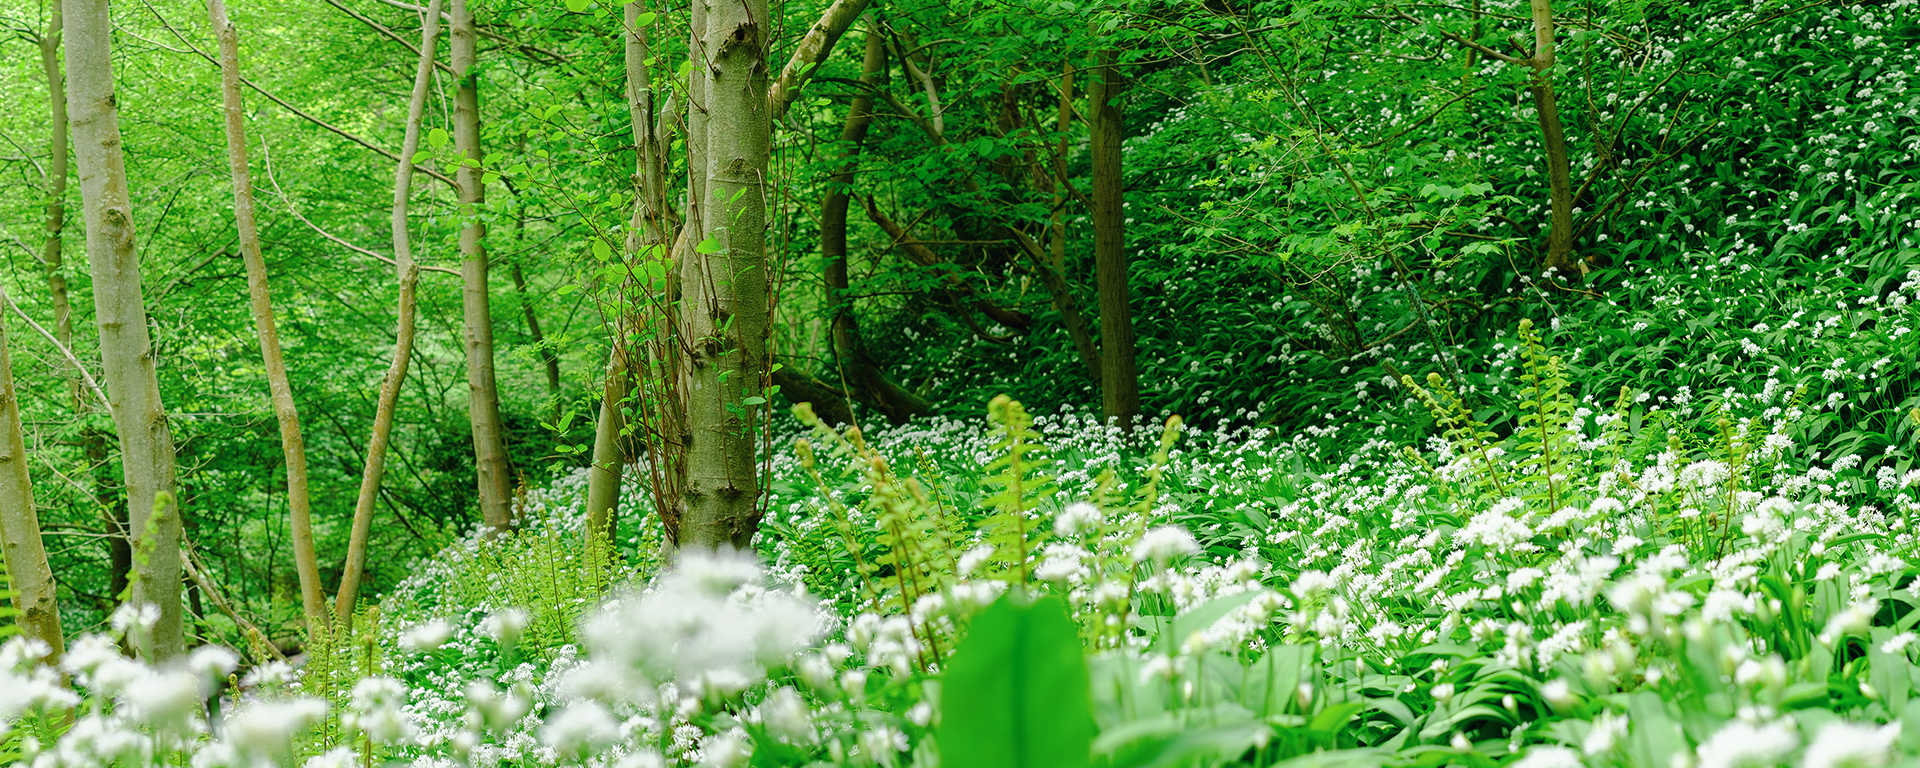 A scene showing green woodland